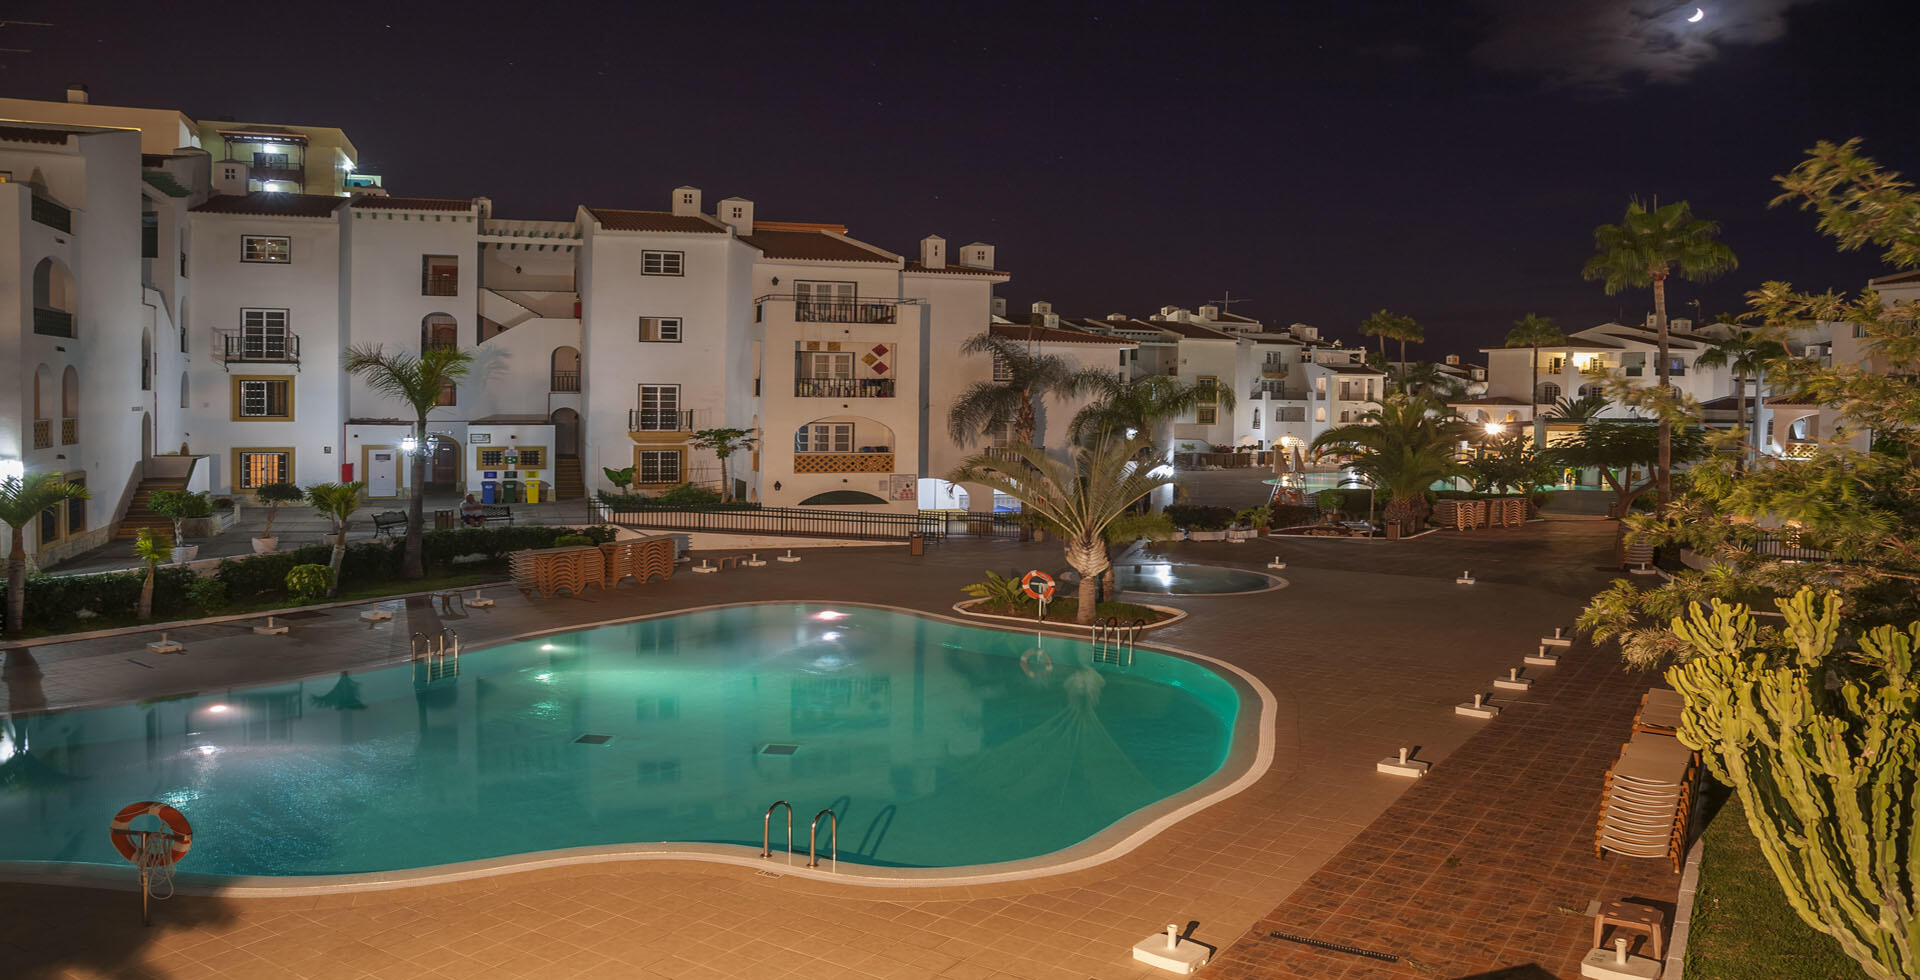 Sunset Harbour Club Outdoor Swimming Pool at Night